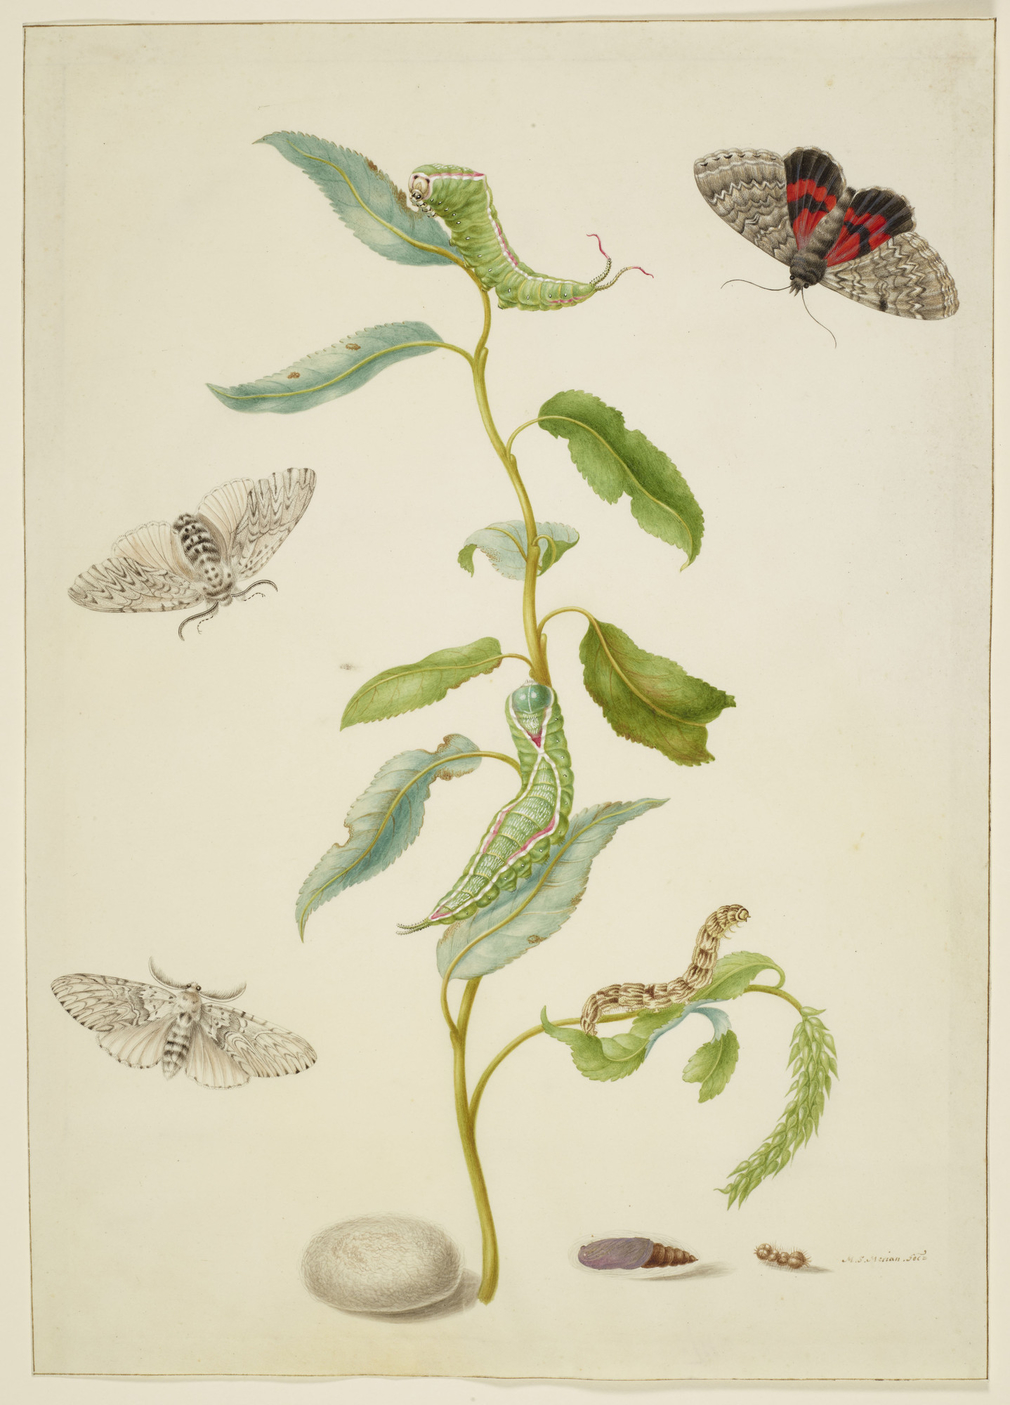 A watercolour of a branchofan unidentified Willow(Salix) with the life cycle of the Puss Moth (Cerura vinula) and the RedUnderwing Moth (Catocala nupta).The depiction of both life cycles are adapted fromplates 38 and 39